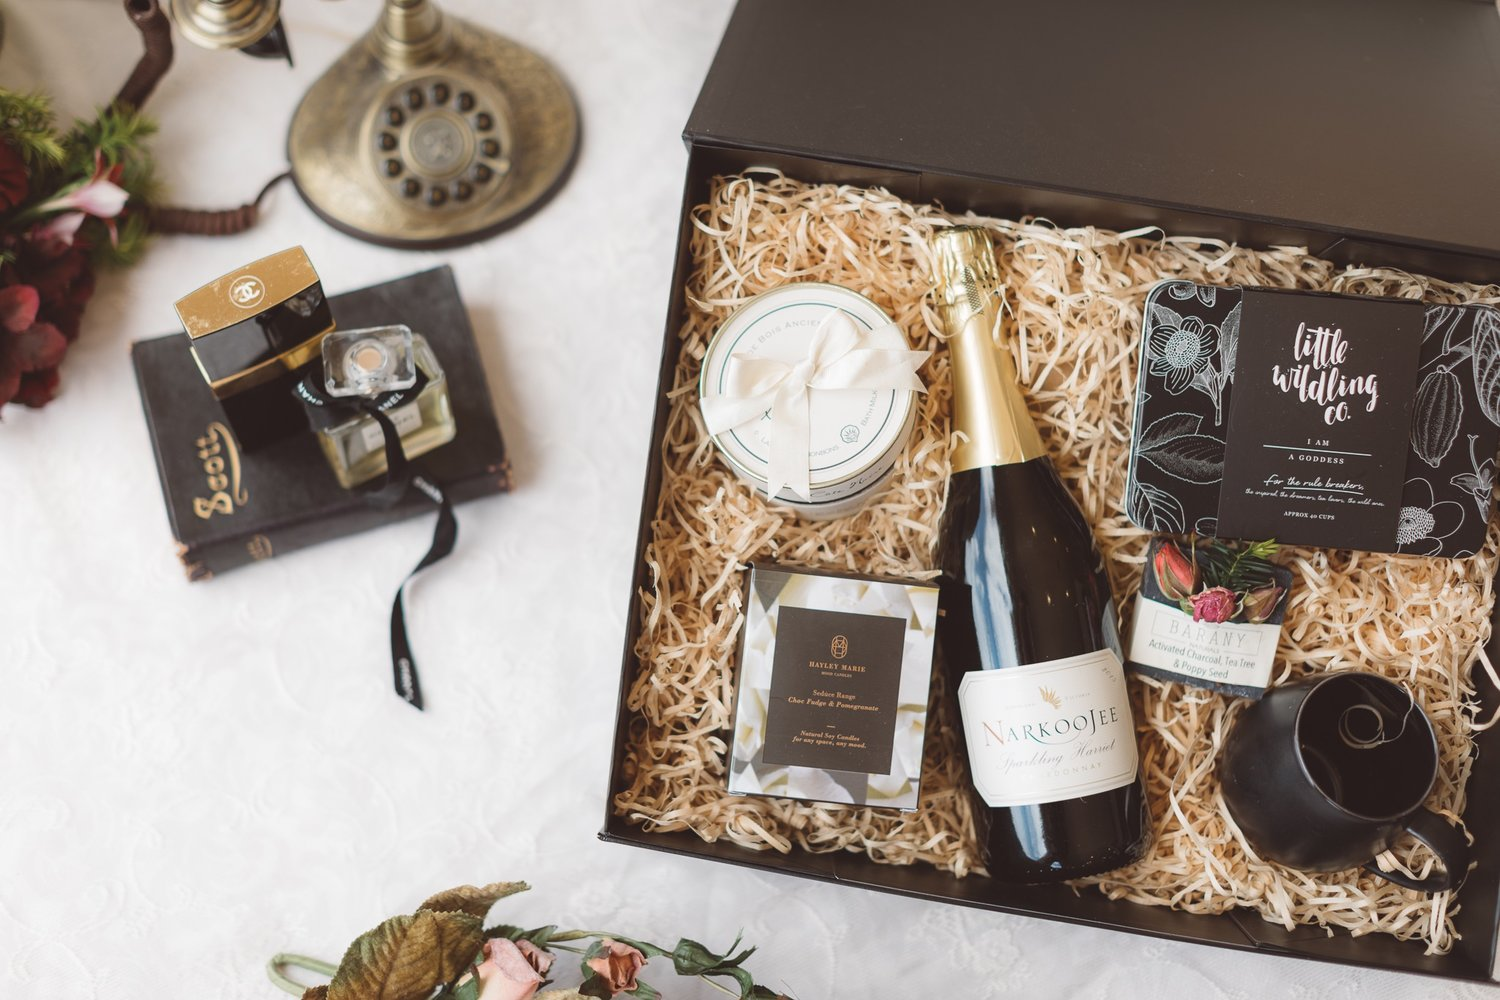 Common Mistakes to Avoid When Shopping for Luxury Gift Hampers